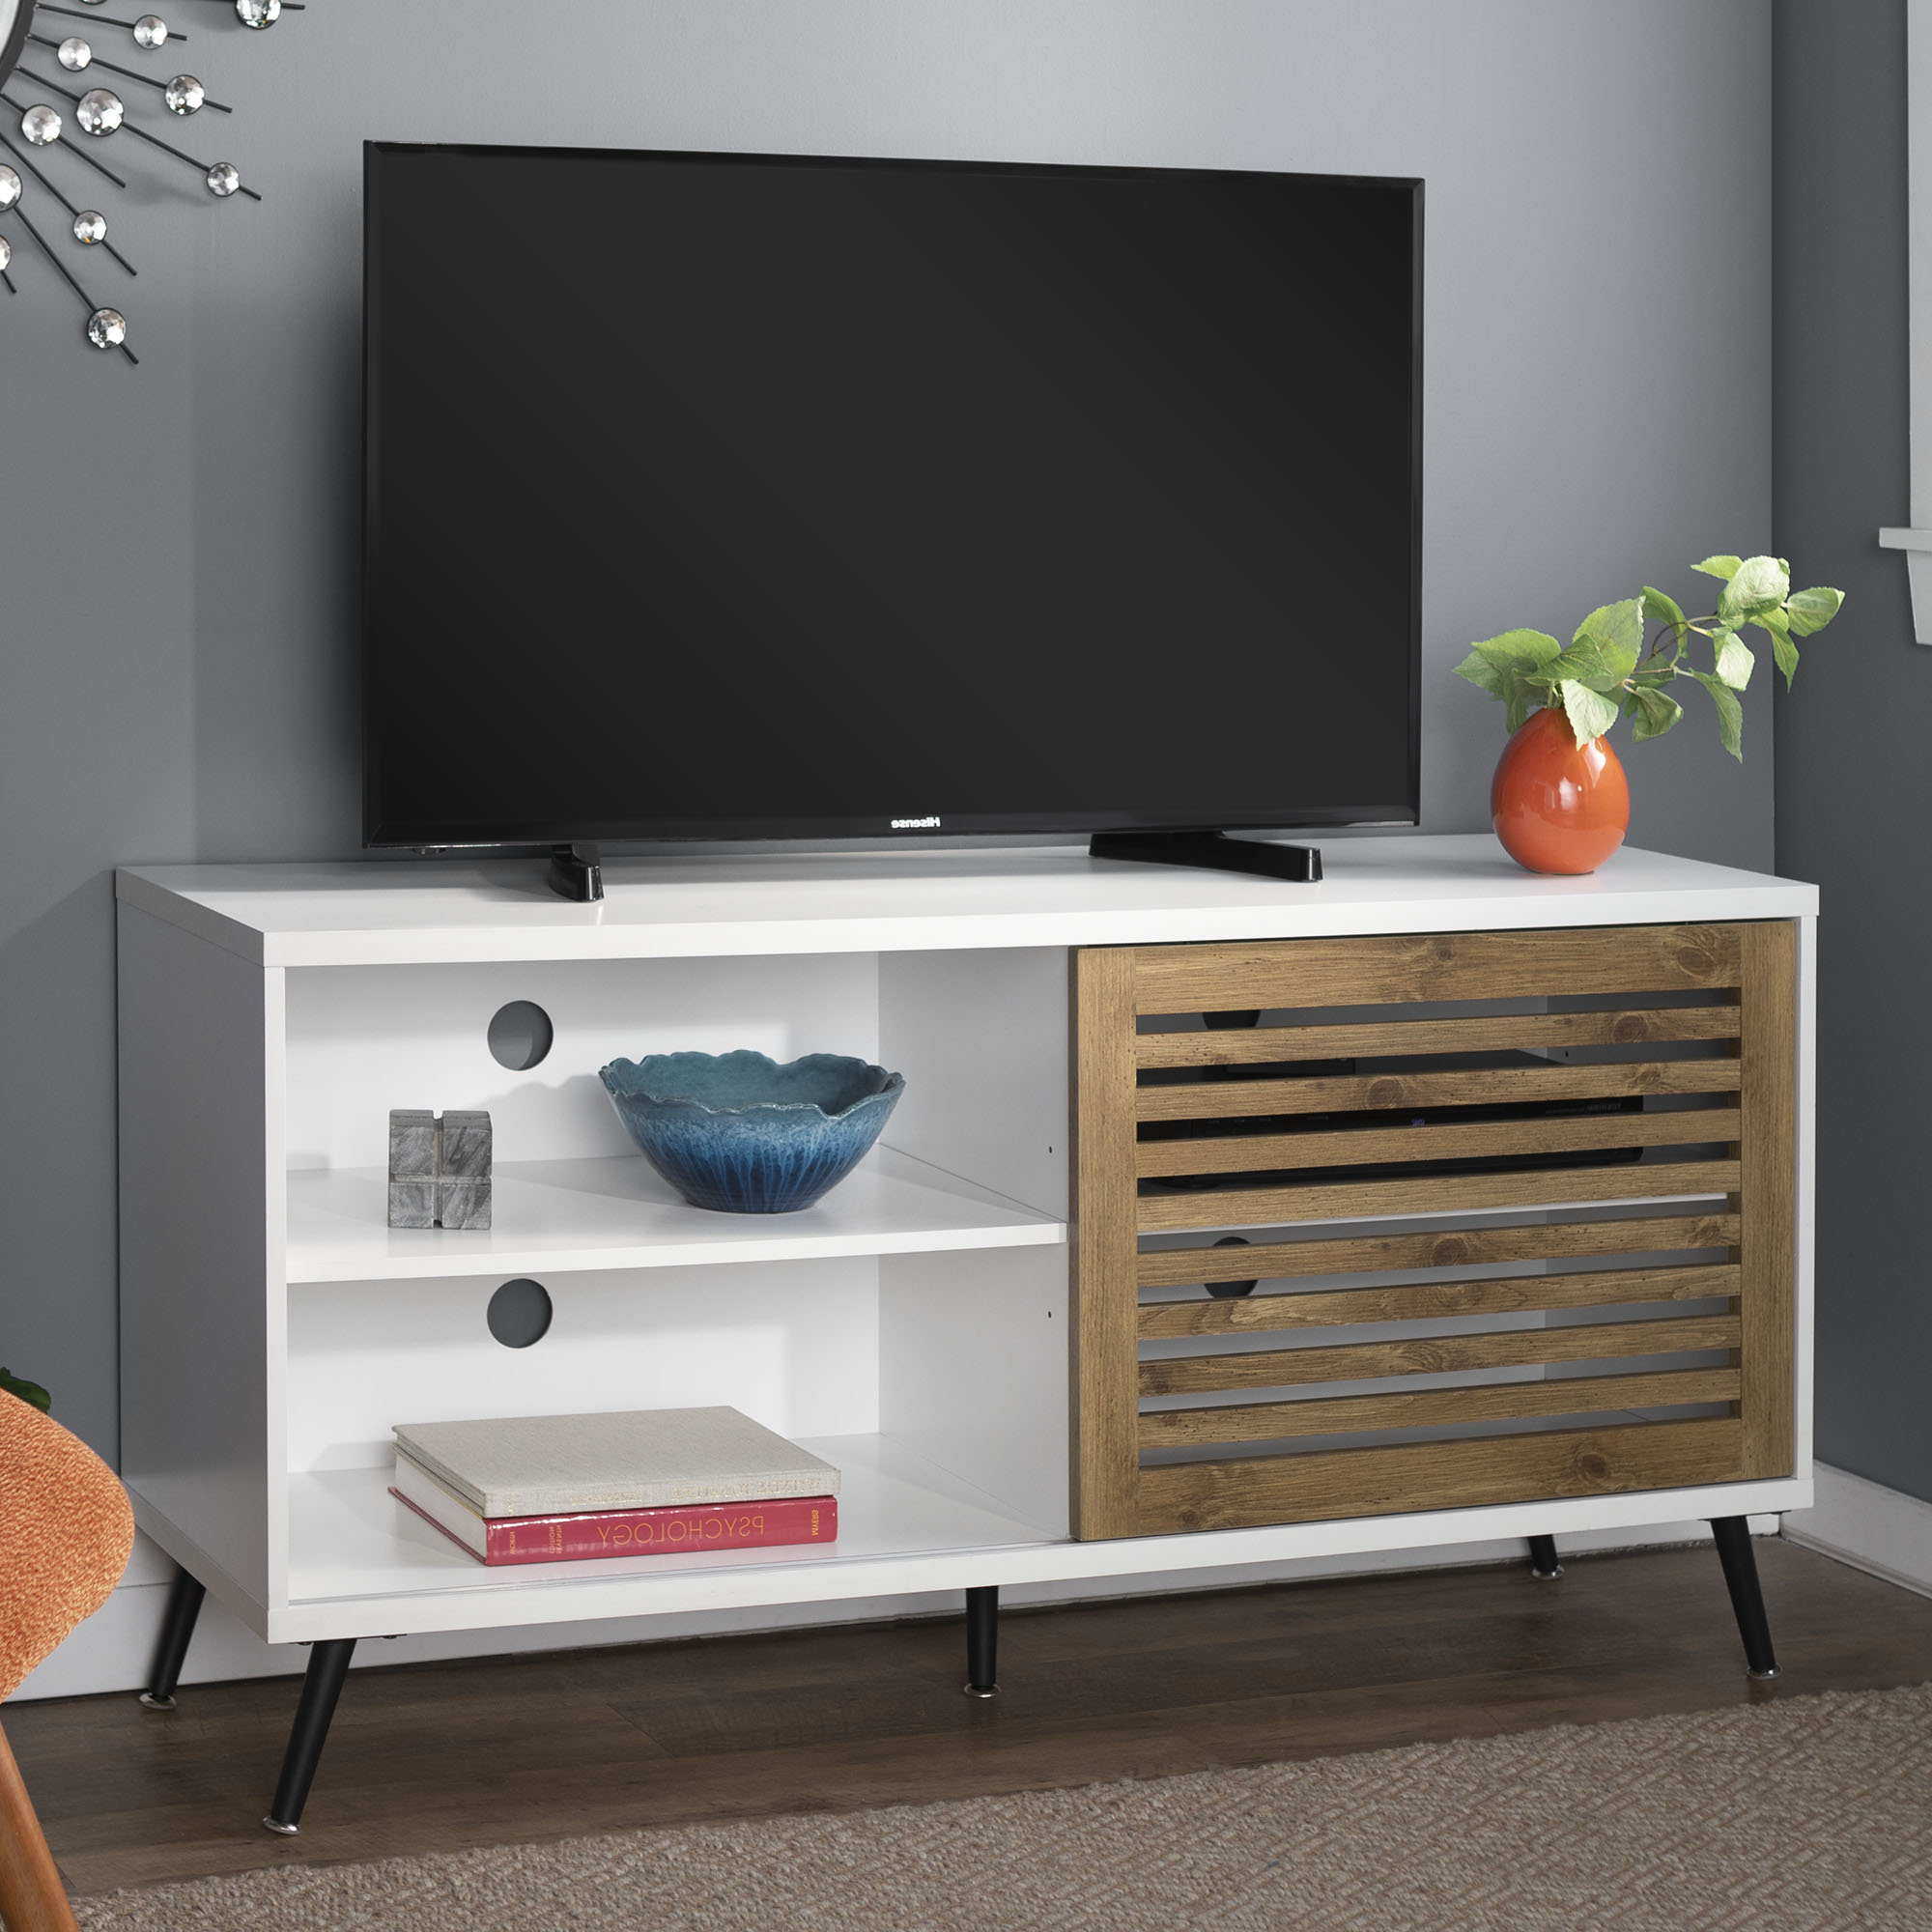 """Desert Fields Mid Century Modern Tv Stand For Tvs Up To 58 Throughout Current Josie Tv Stands For Tvs Up To 58"""" (View 10 of 20)"""